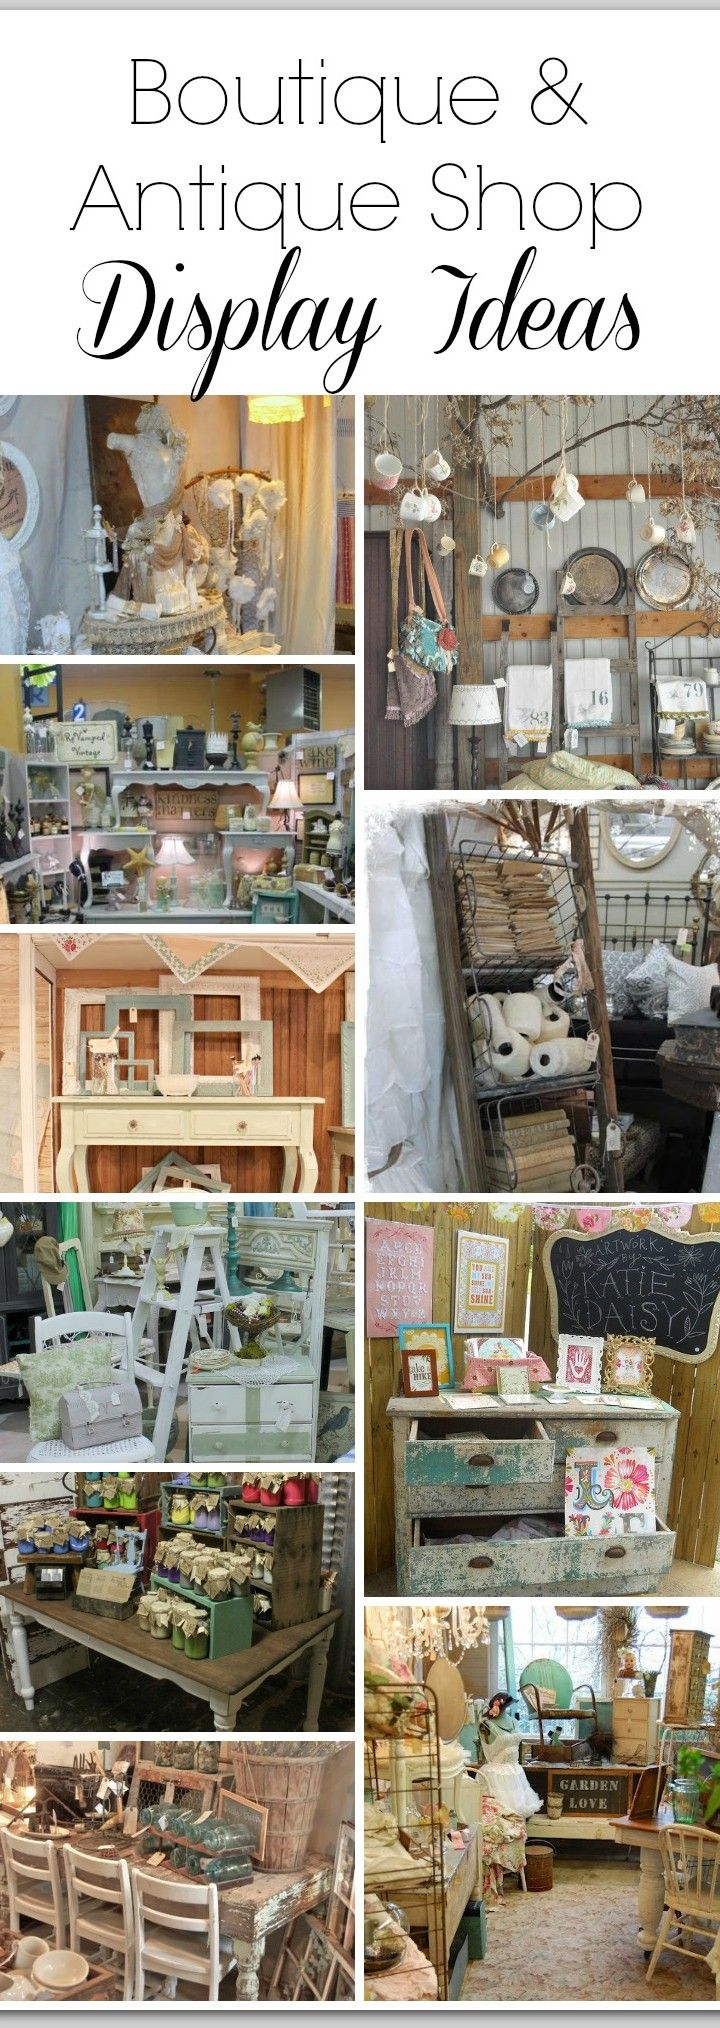 Boutique & Antique Shop Owners: See how easy it is to become a reseller of Mudpaint. Mudpaint is the fastest growing furniture paint in the U.S. Order minimums are very low and there are…